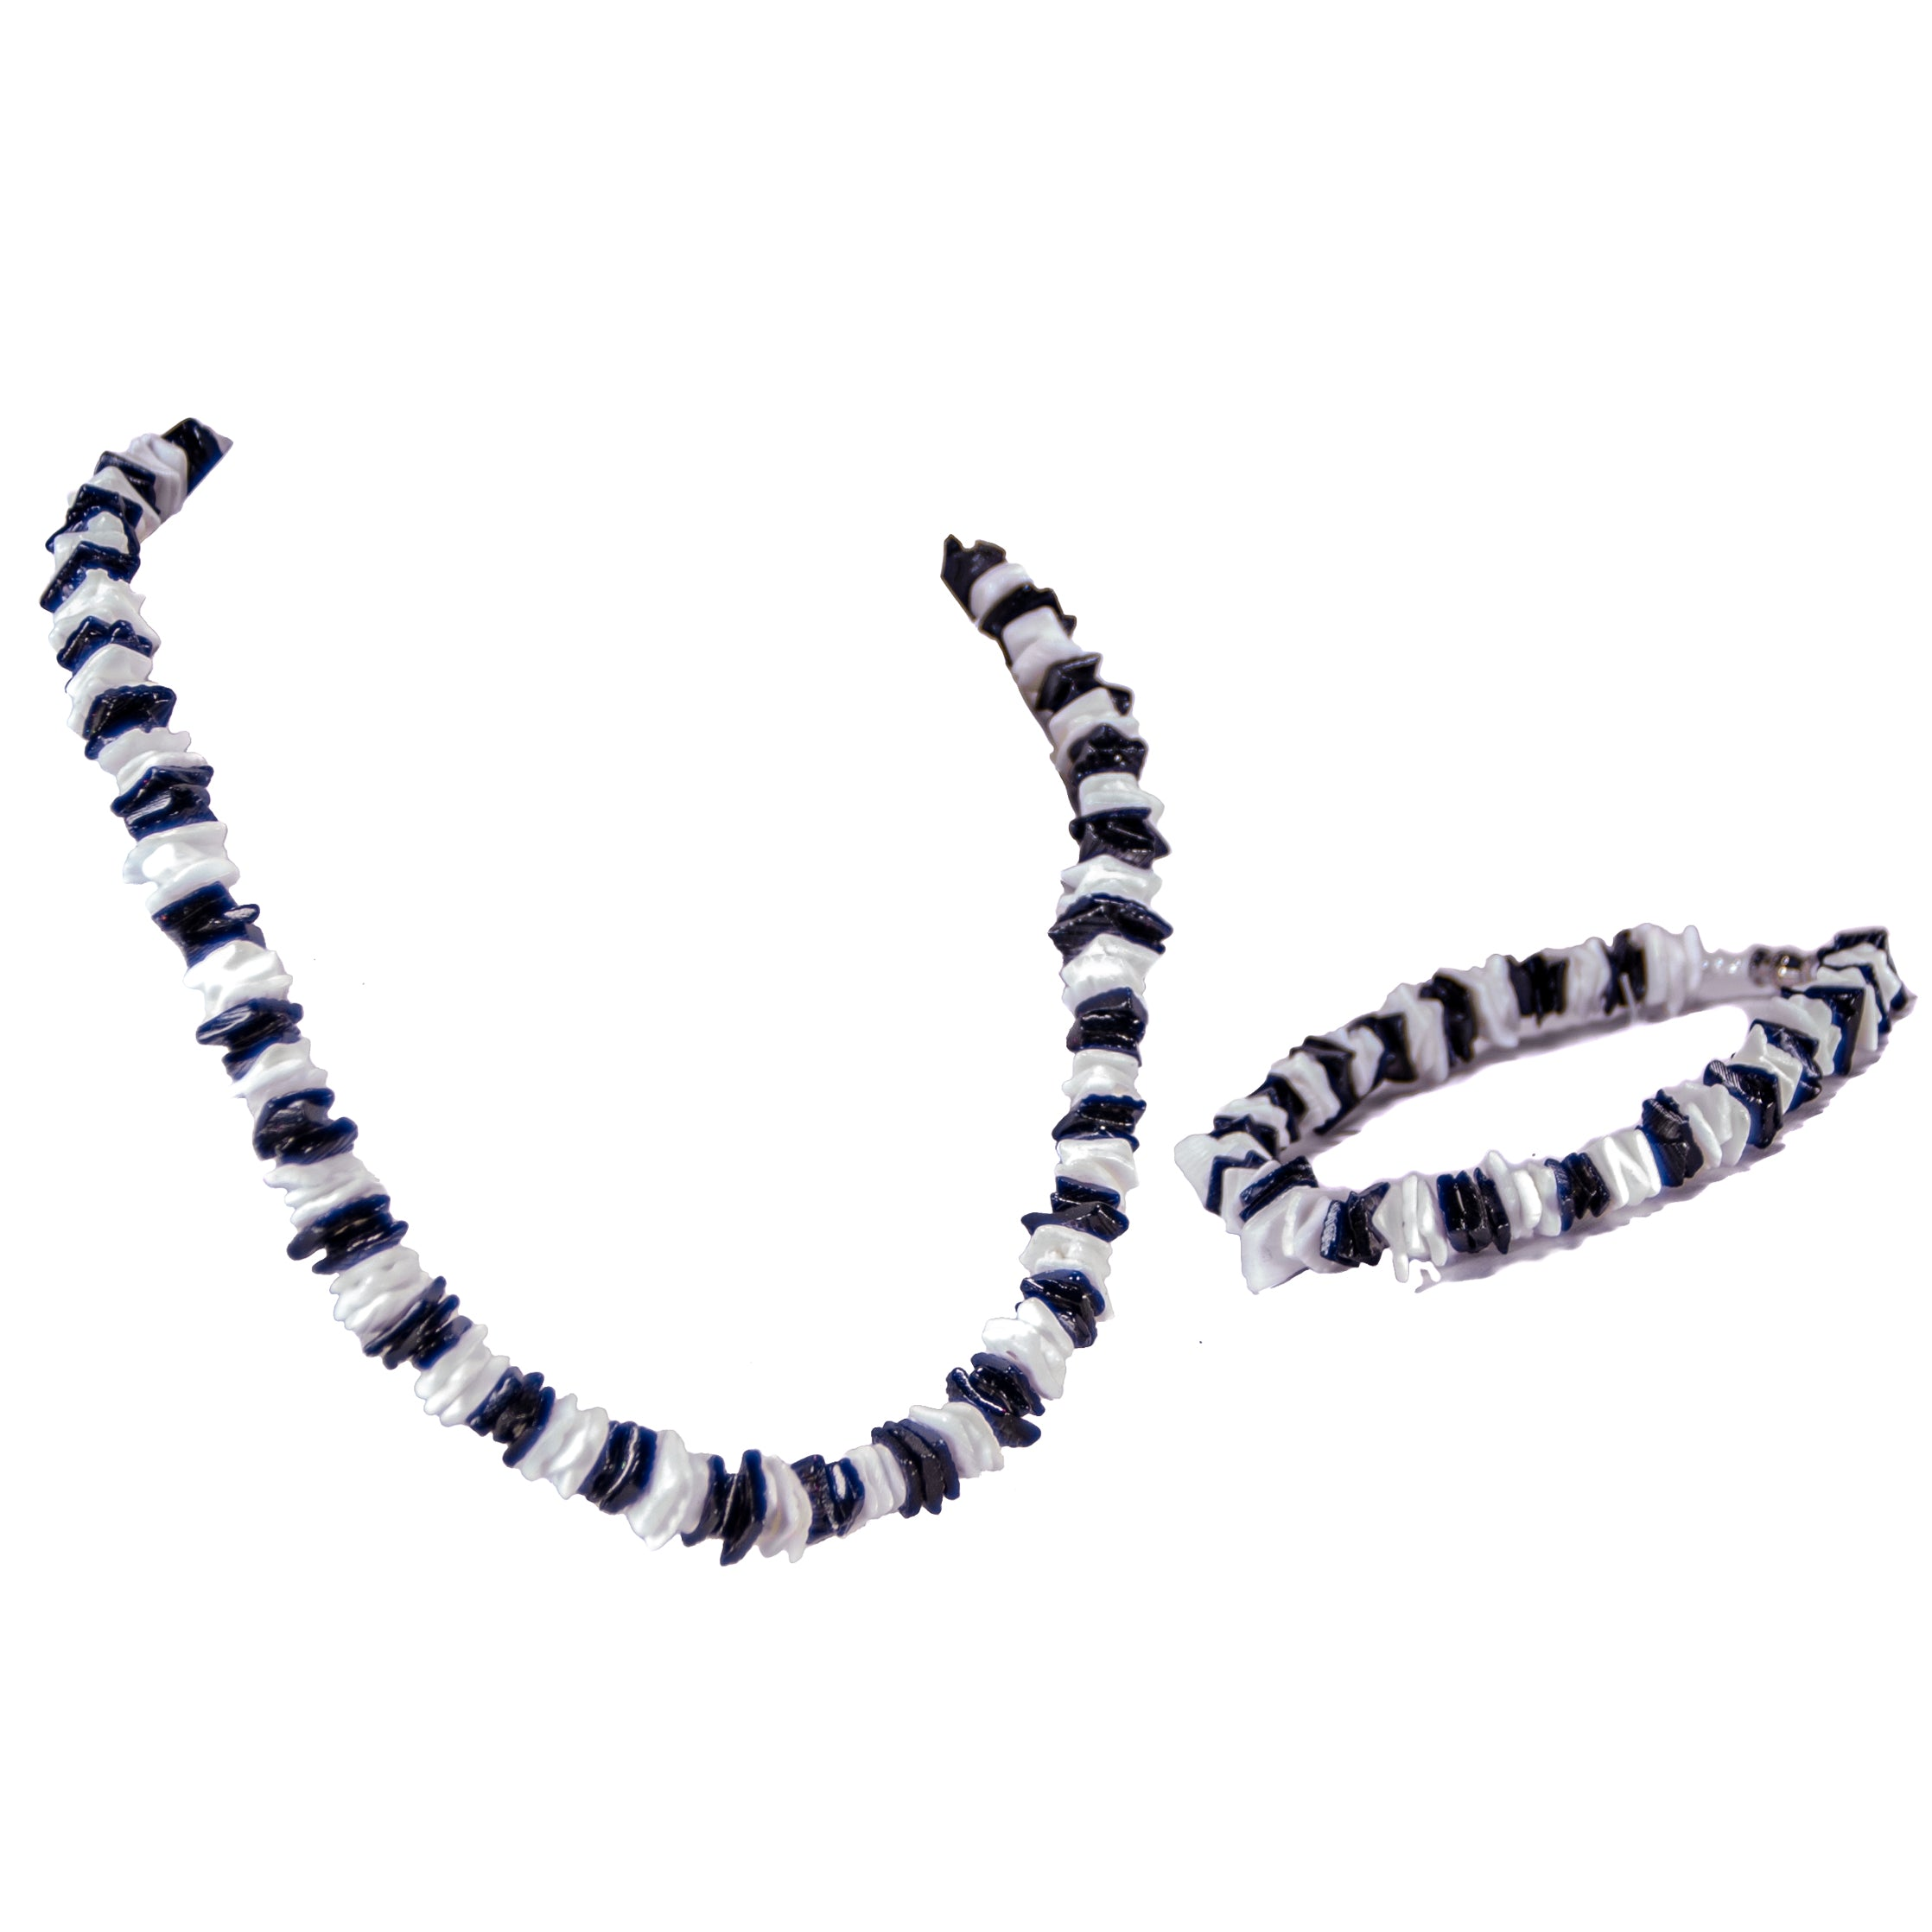 Black and White Puka Chip Shells Necklace & Anklet Set